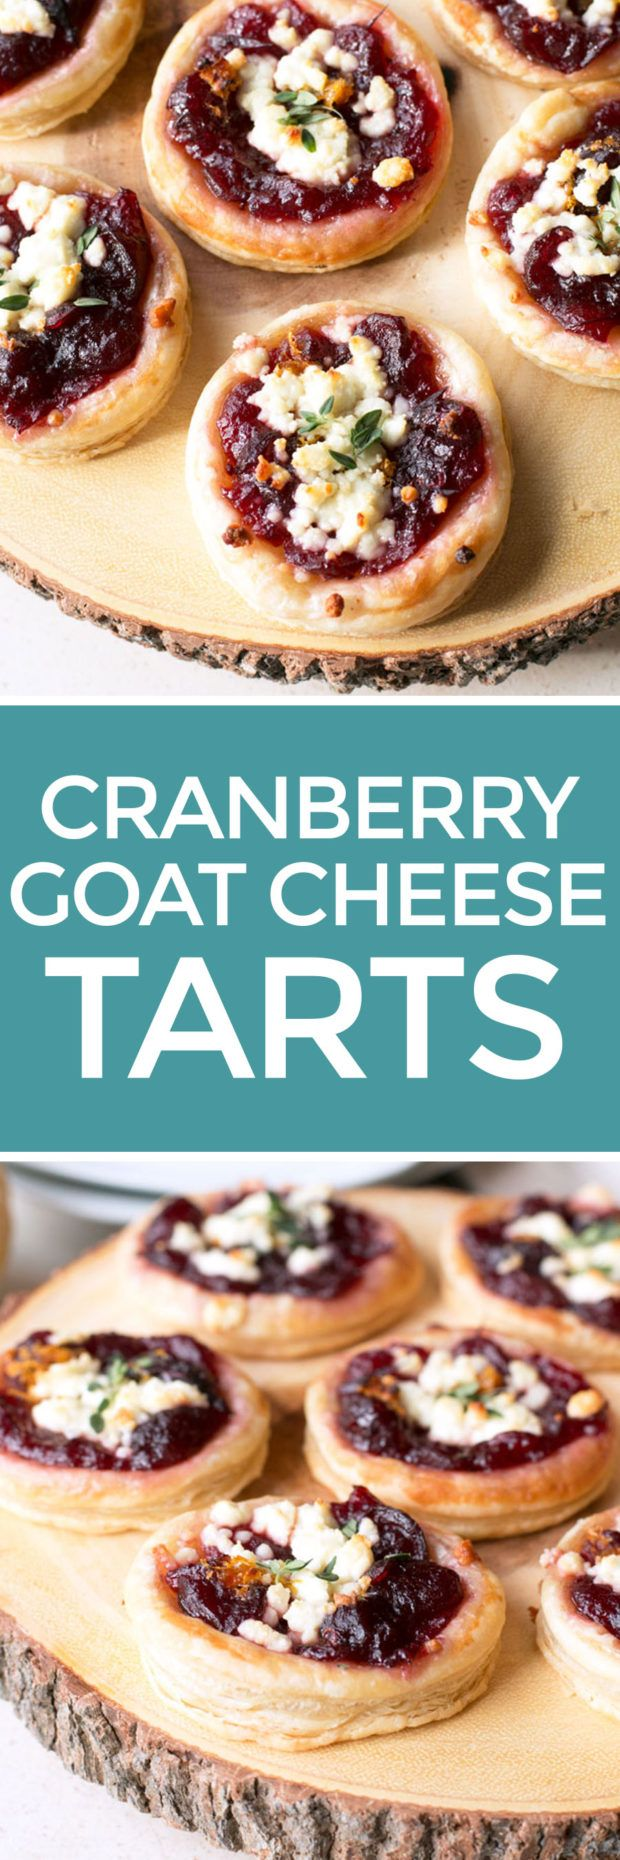 Cranberry Goat Cheese Tarts from Cake 'n Knife! Love these!!! Delicious and easy!